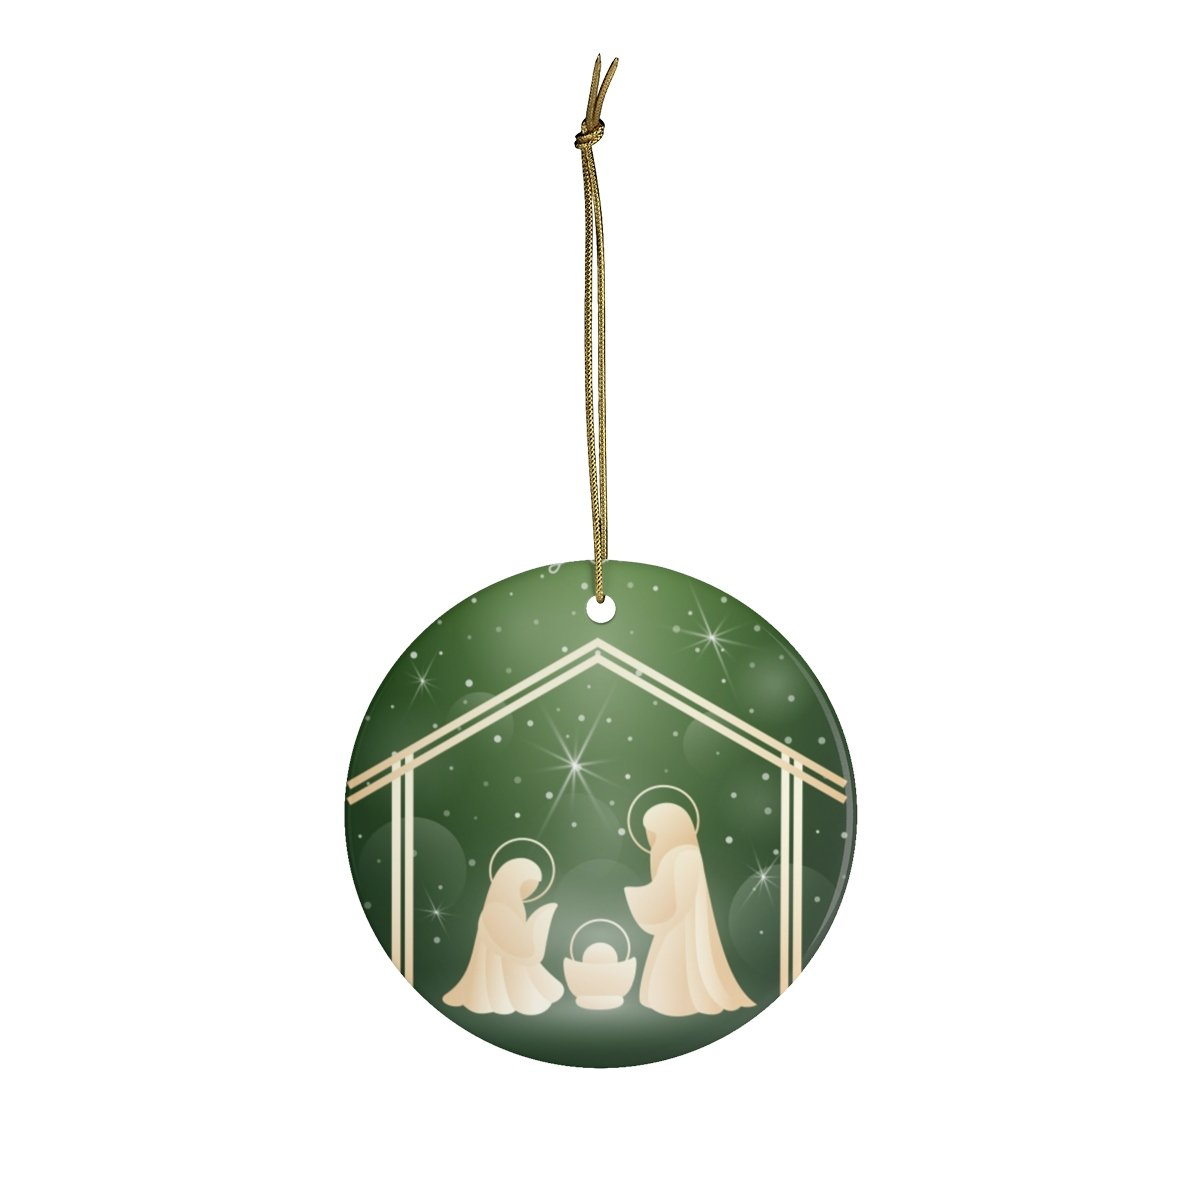 Ceramic Ornaments - Christmas